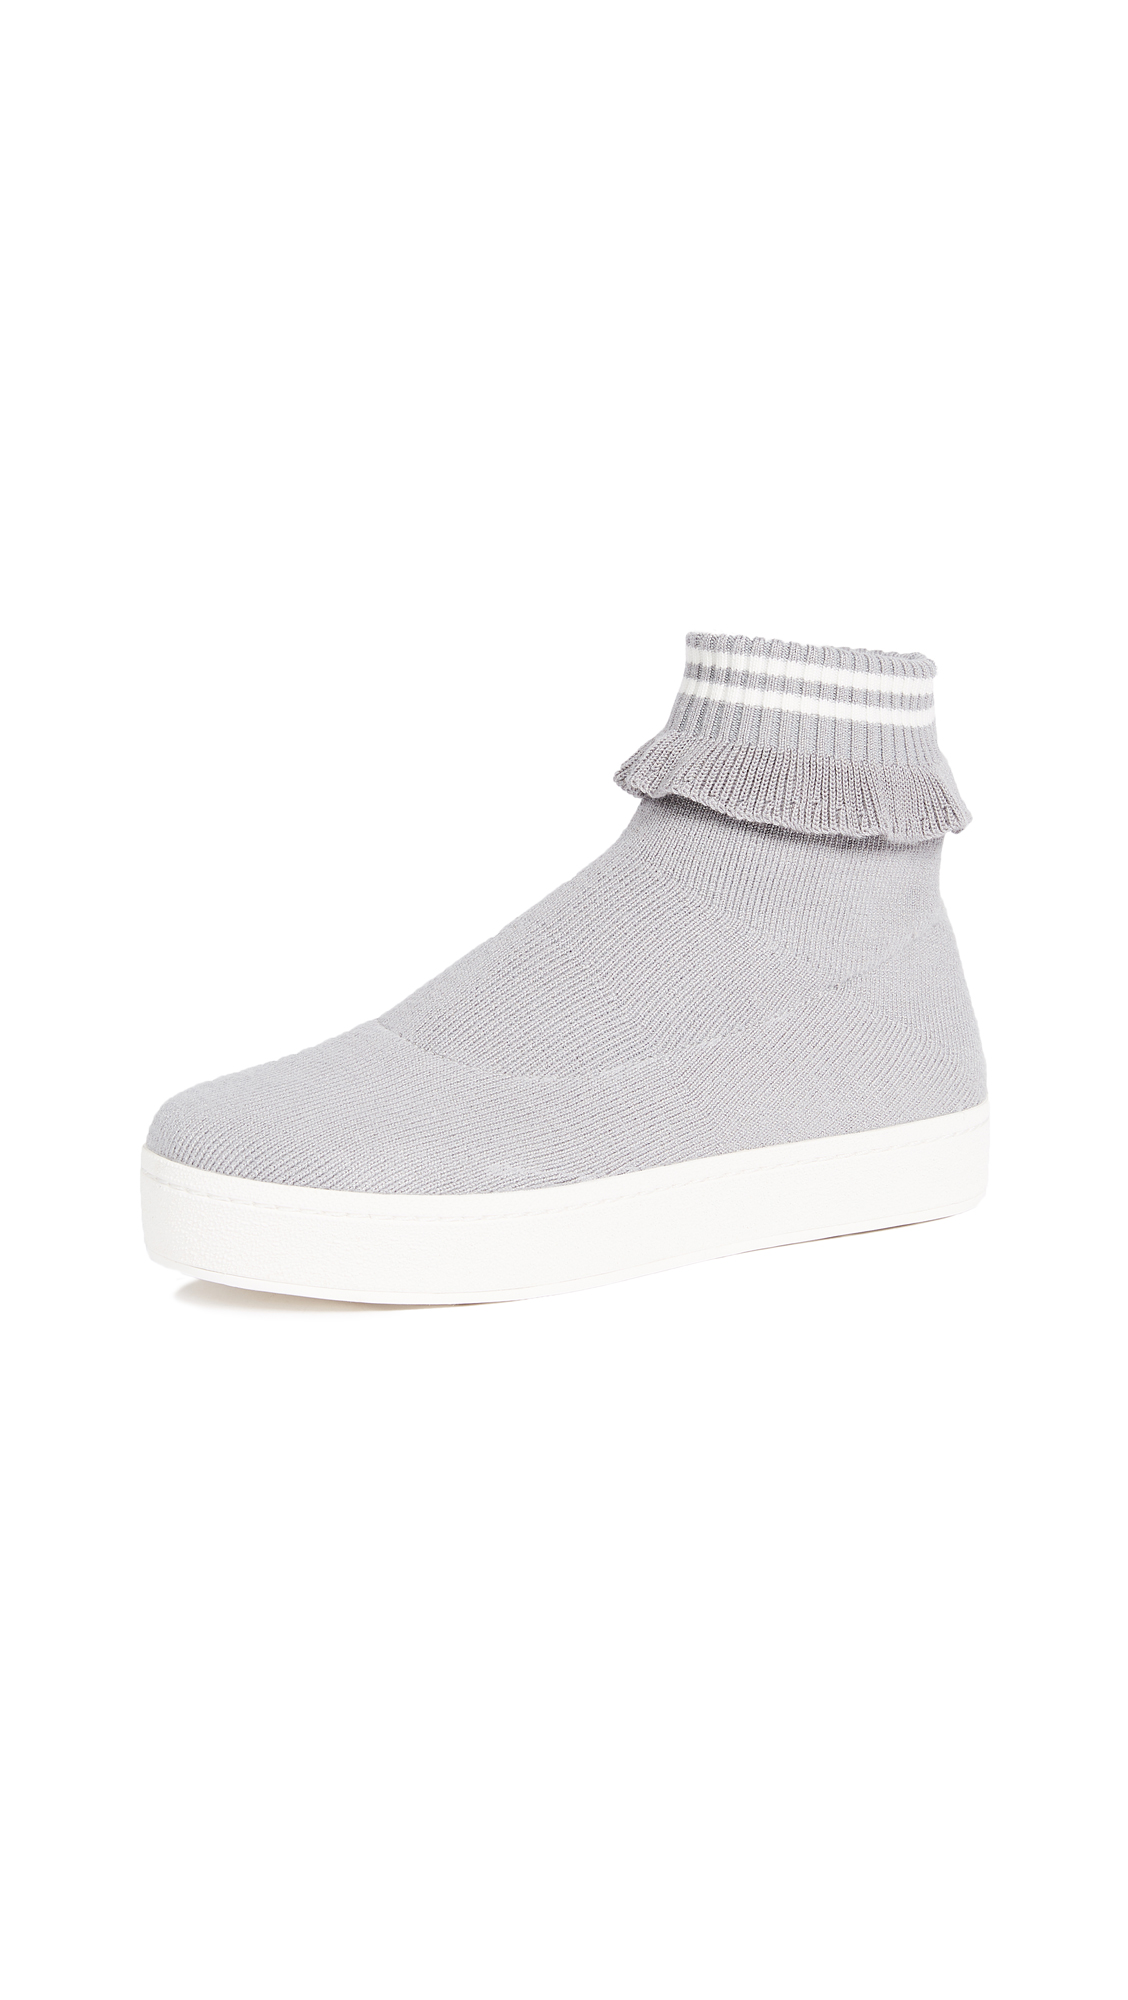 Opening Ceremony Bobby Slip On Sneakers - Heather Grey